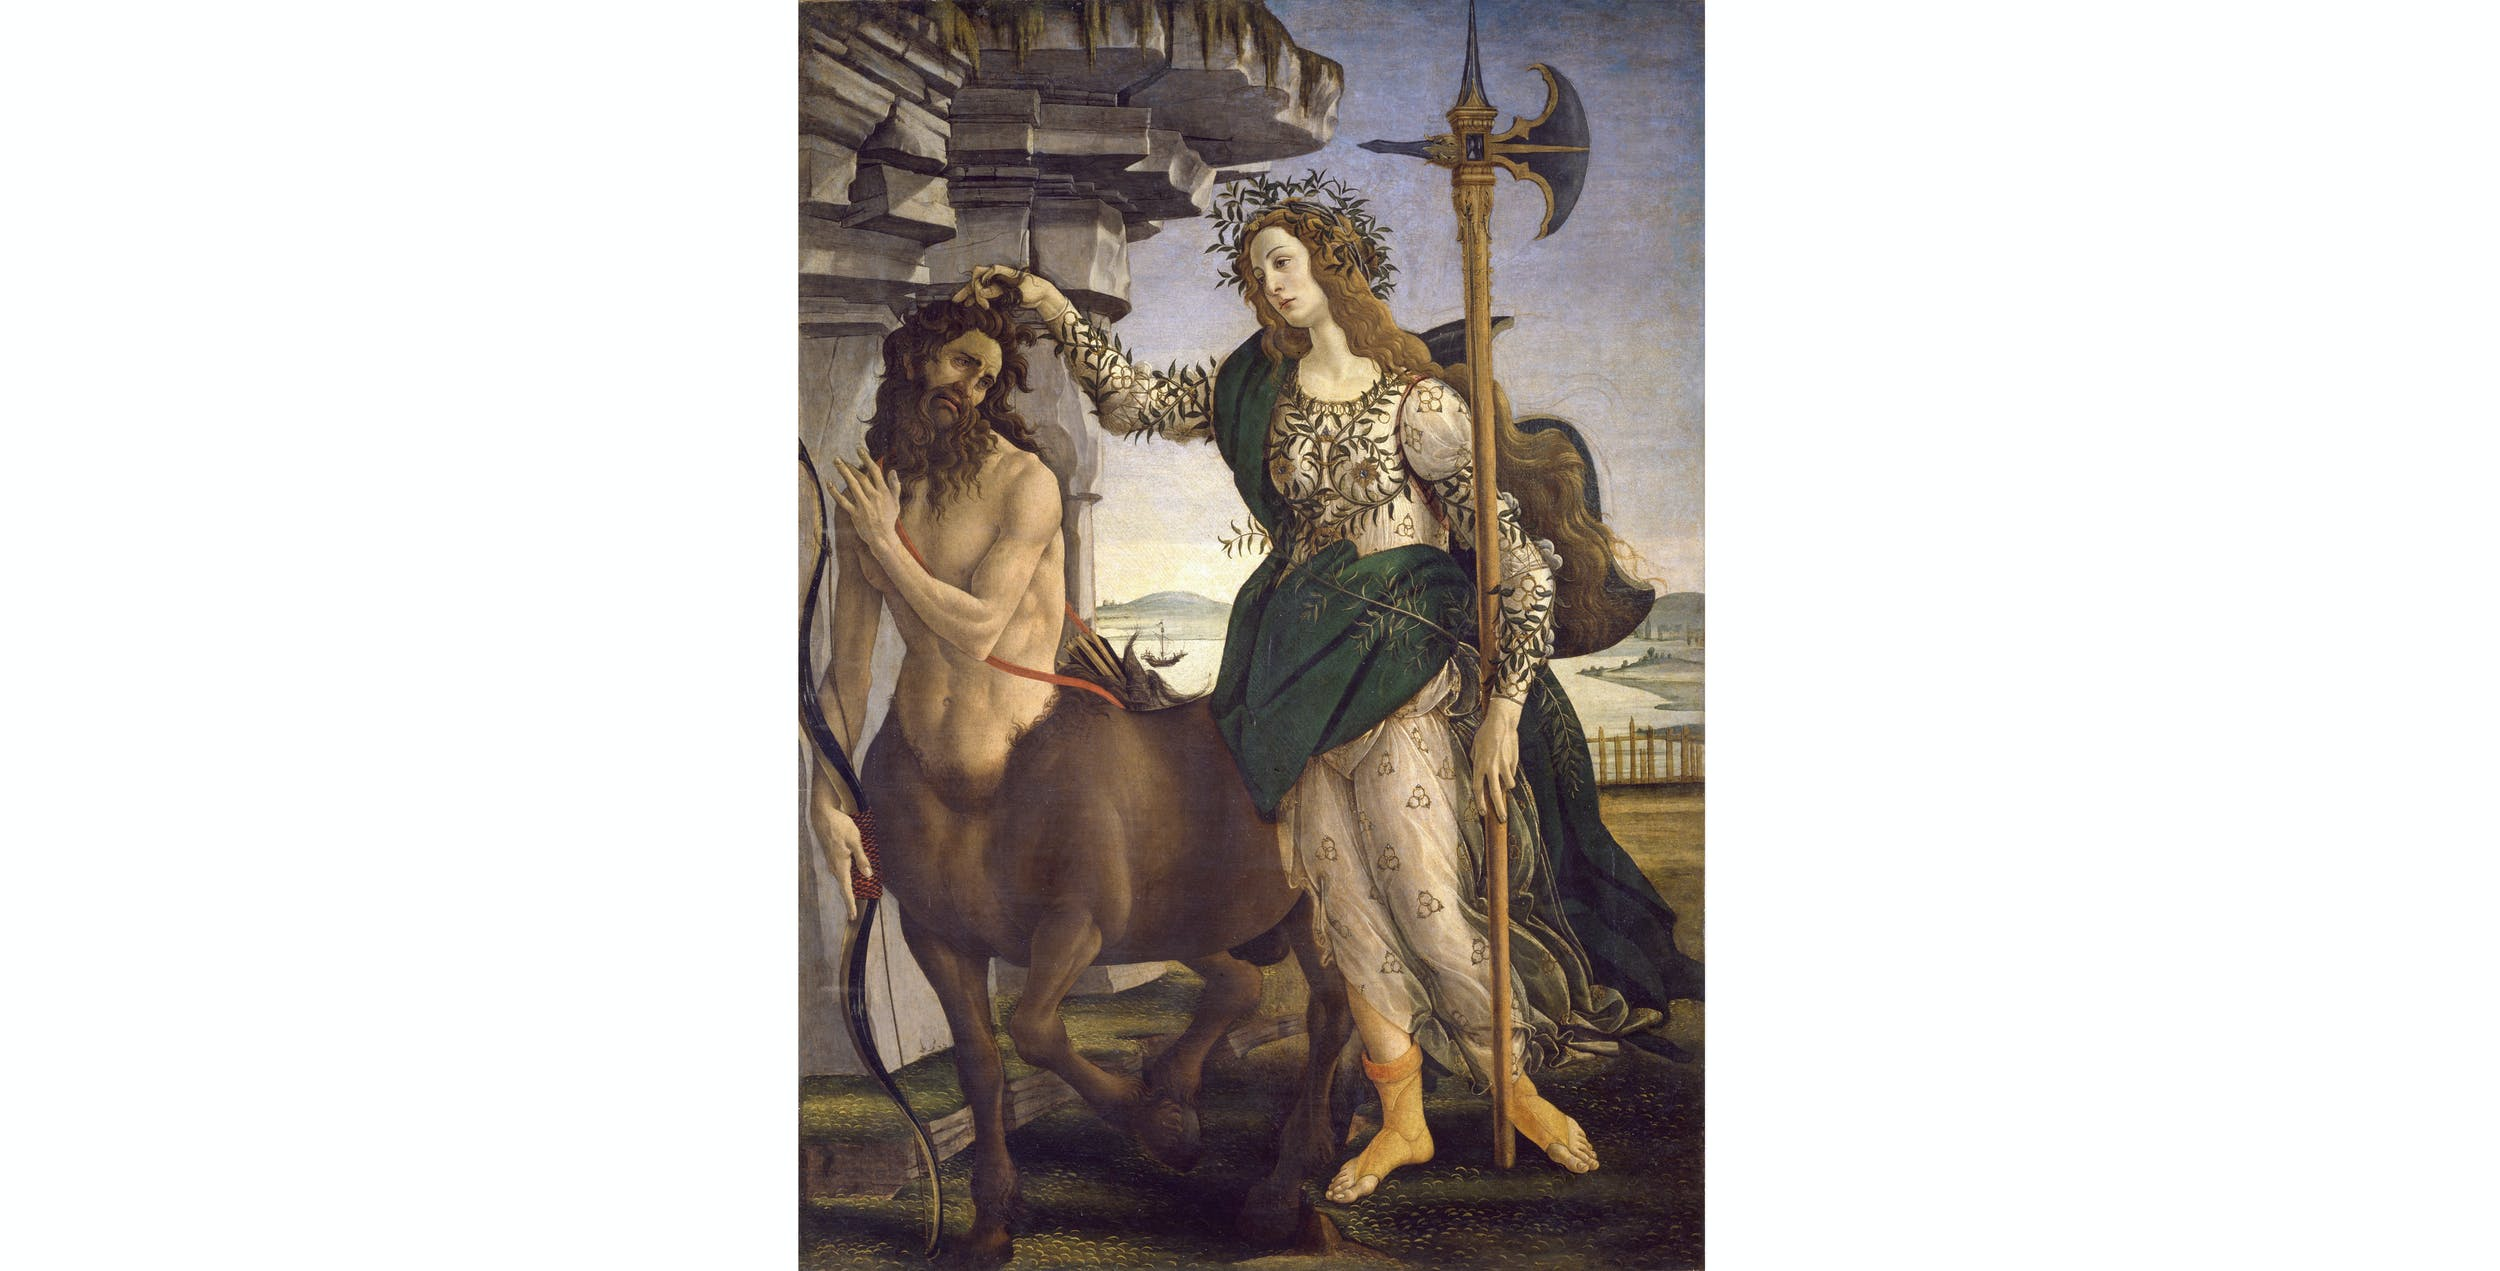 Sandro Botticelli, Pallade e il centauro I Sandro Botticelli, Pallas and the centaur